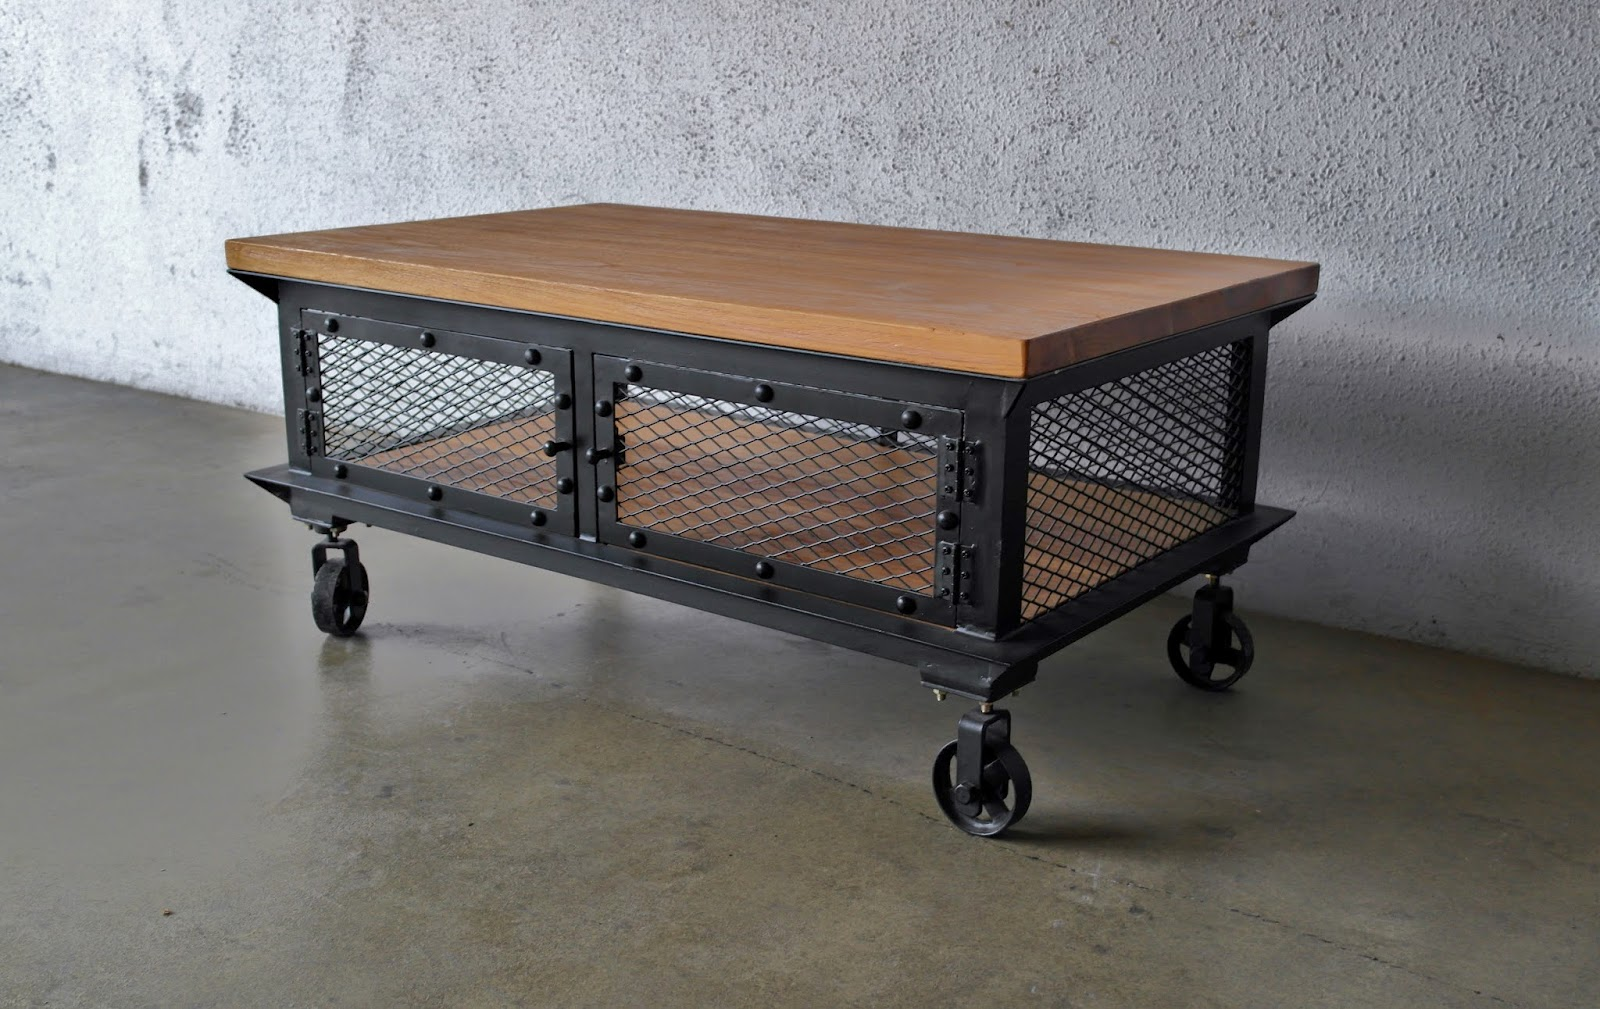 More Industrial And Metal Furniture From Second Charm Second Charm